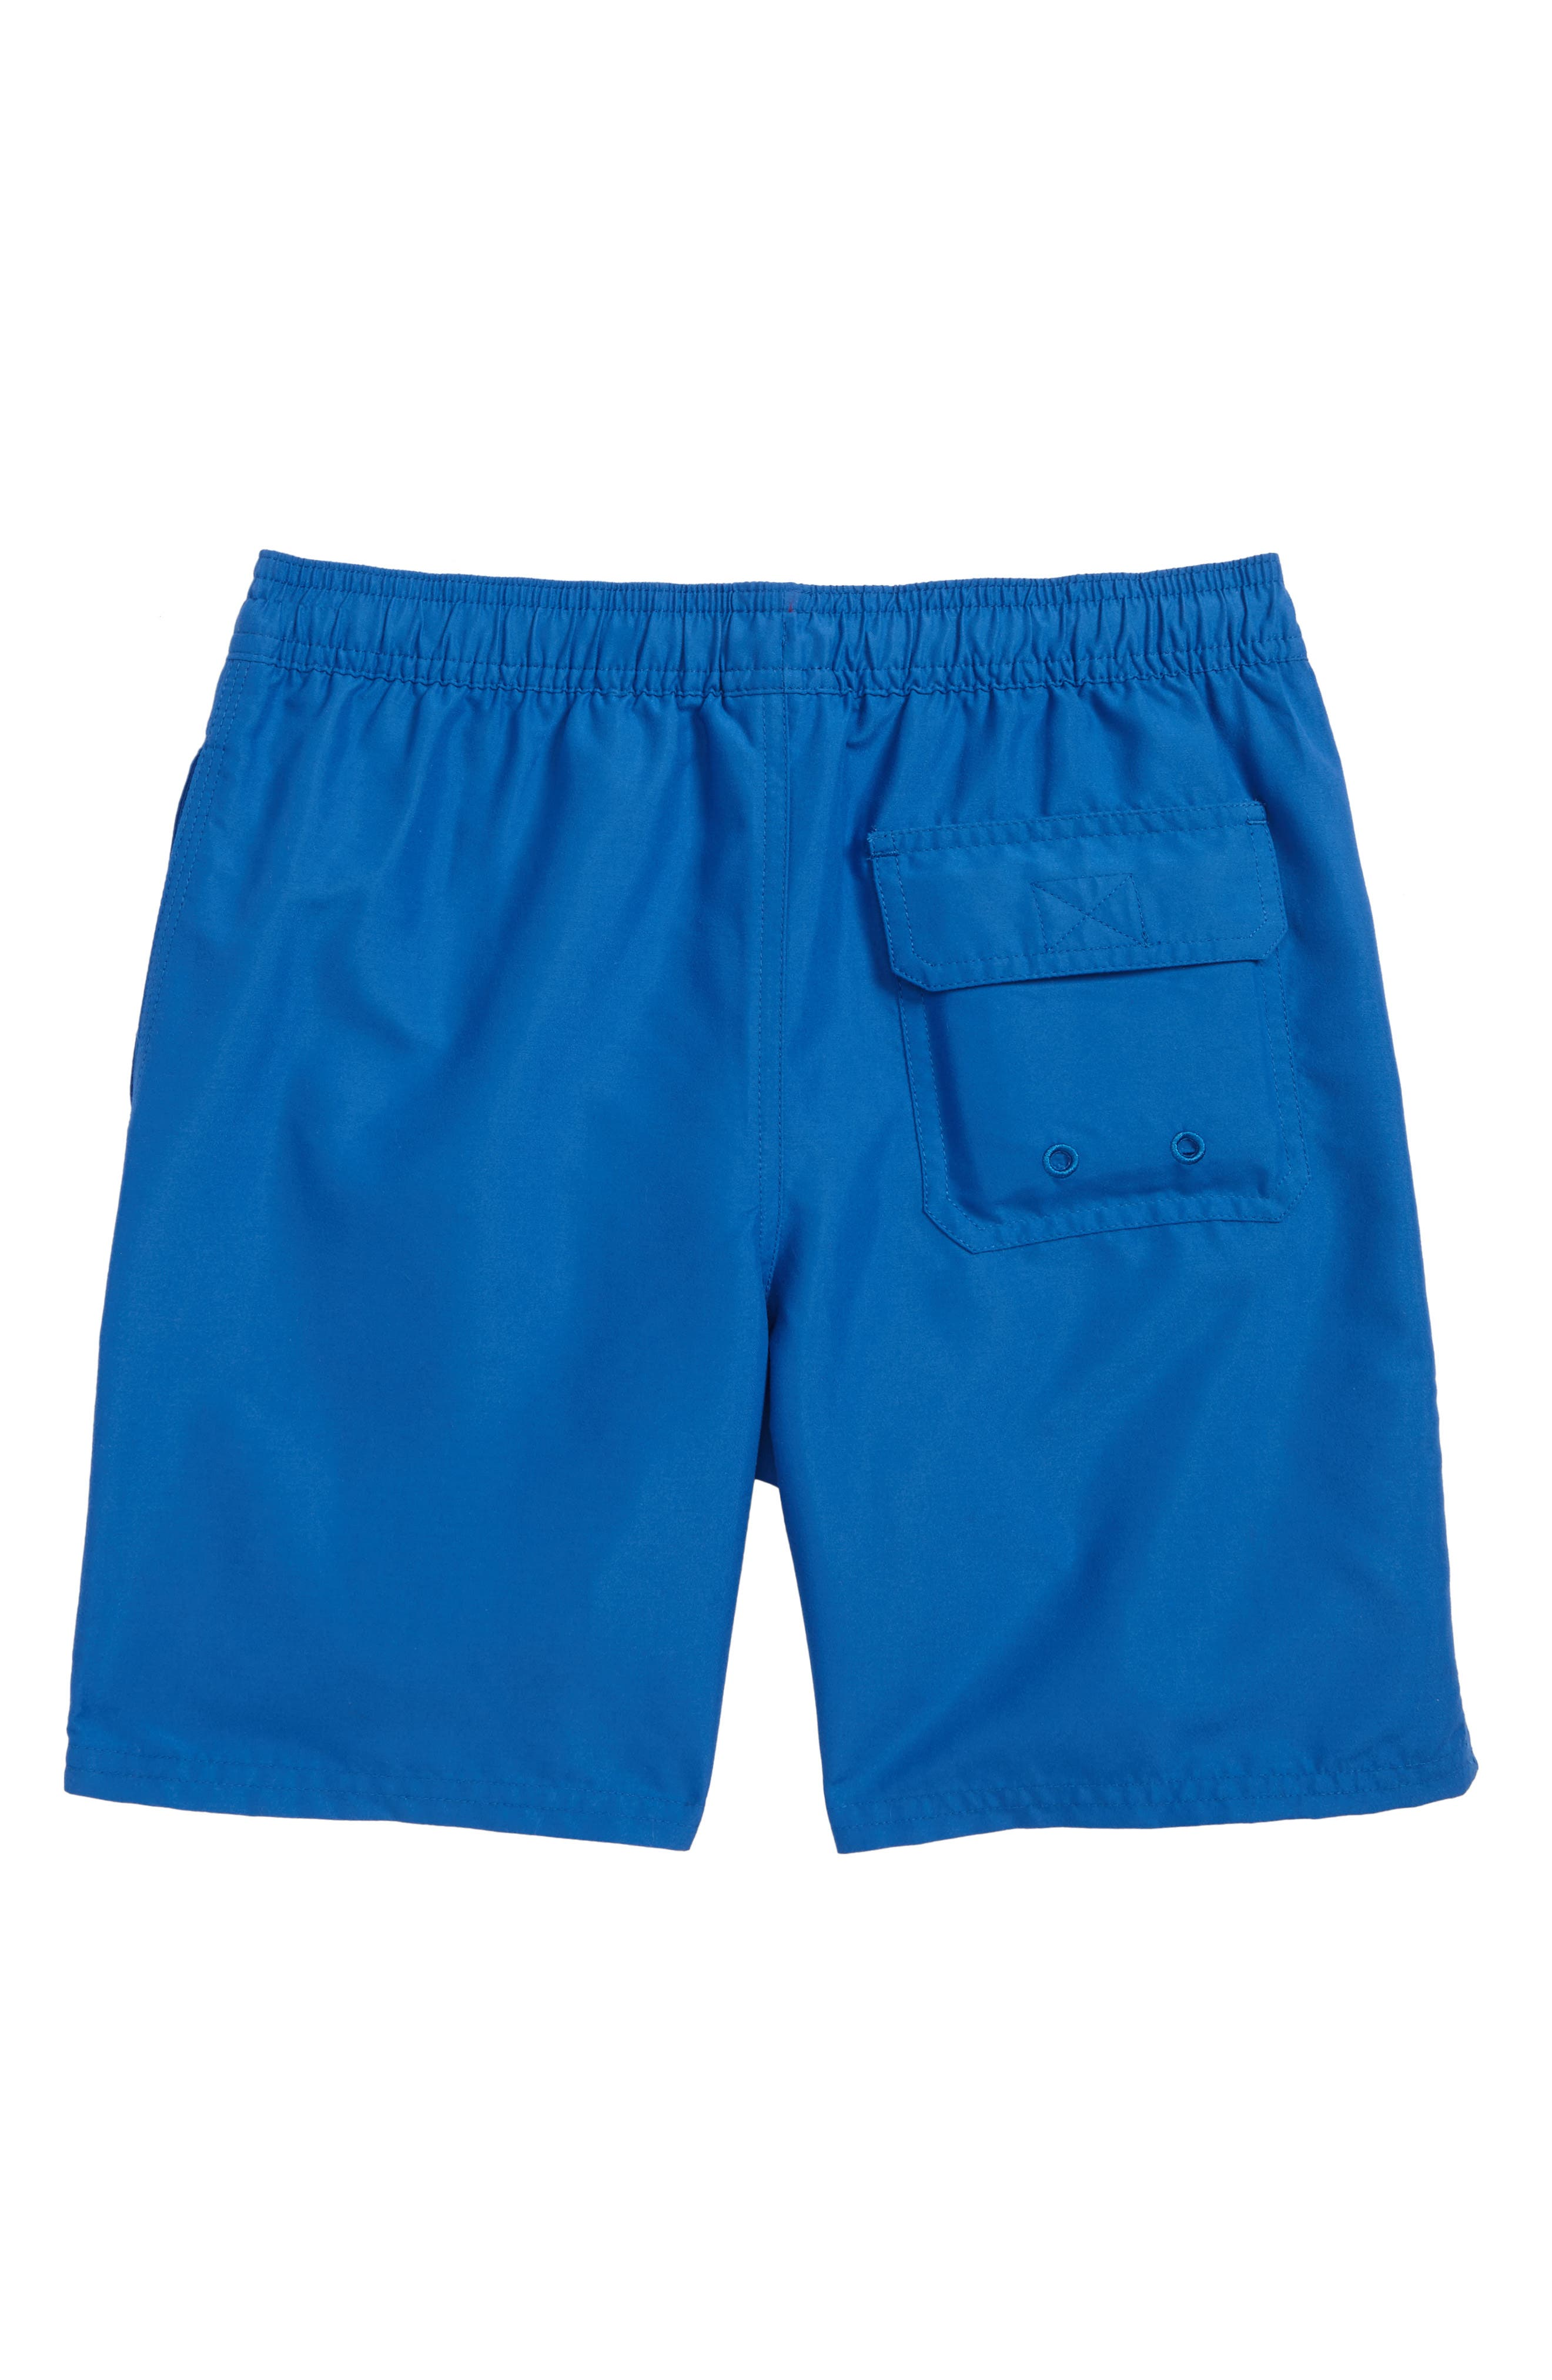 Bungalow Board Shorts,                             Alternate thumbnail 2, color,                             413